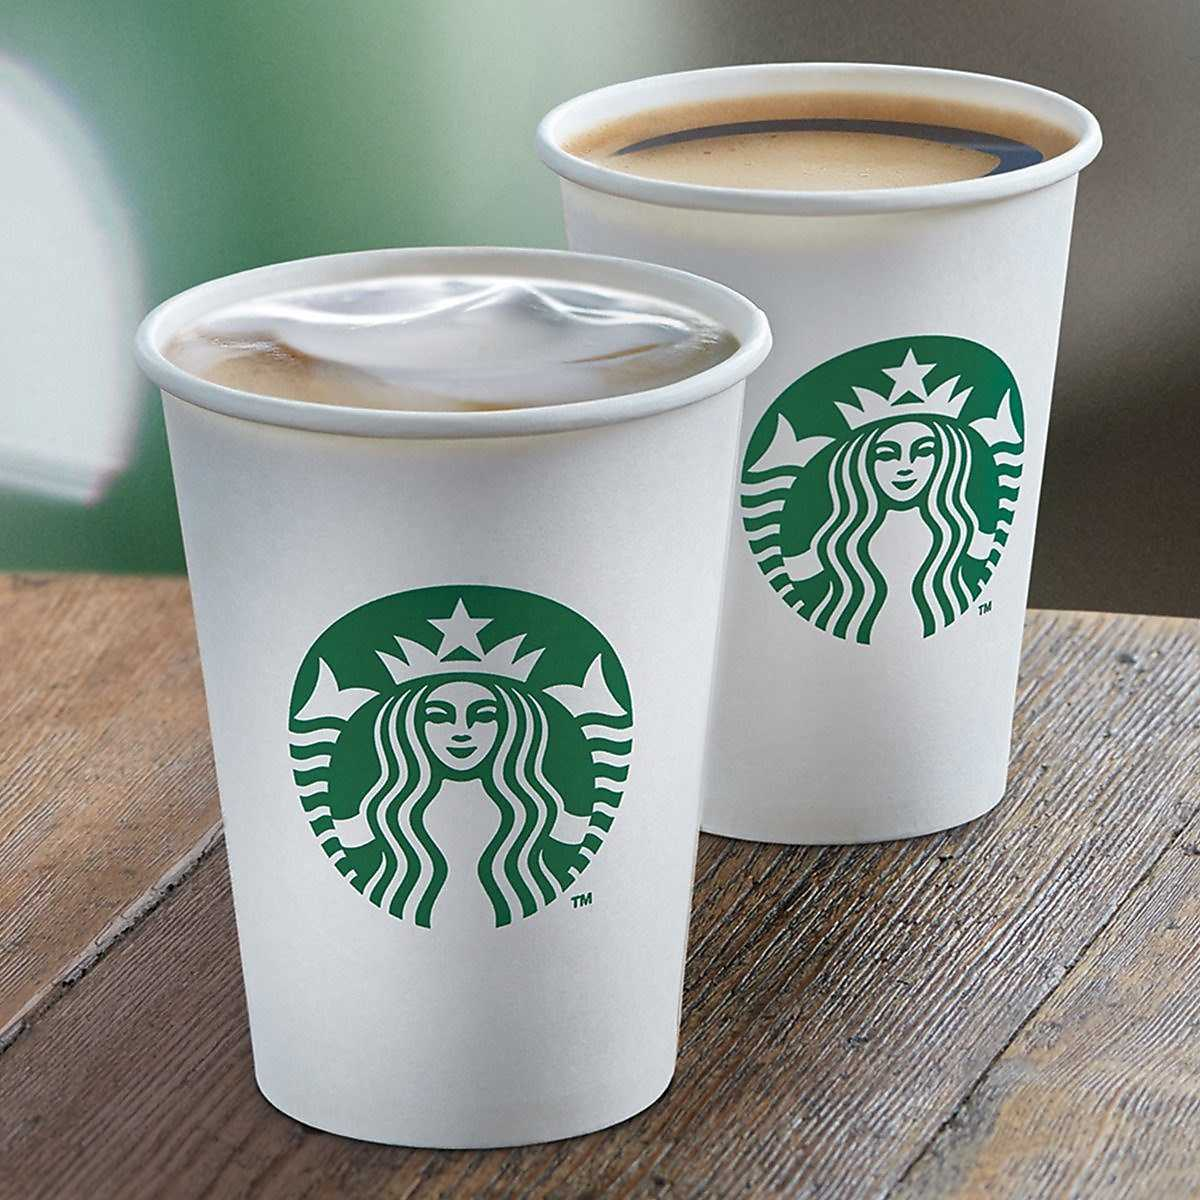 ☕ Gratis Starbucks on the go Cappucchino Getränk bei Shell